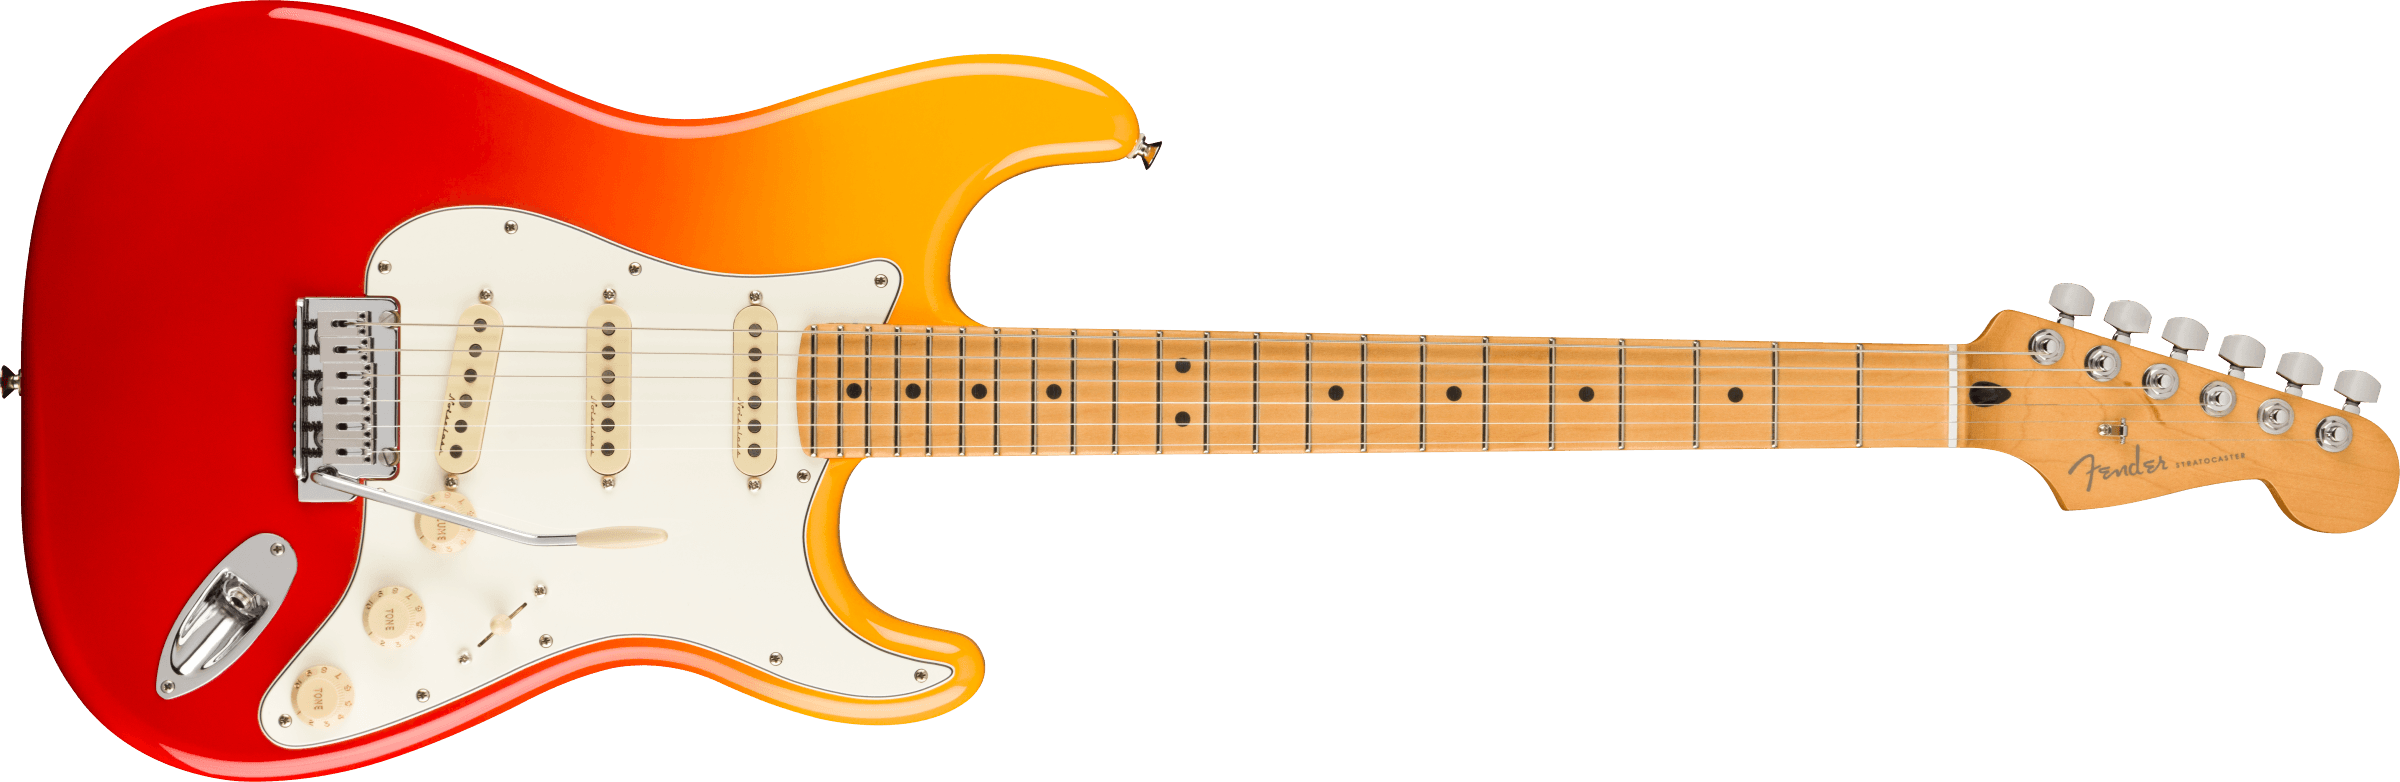 0147312387_player_plus_stratocaster_1